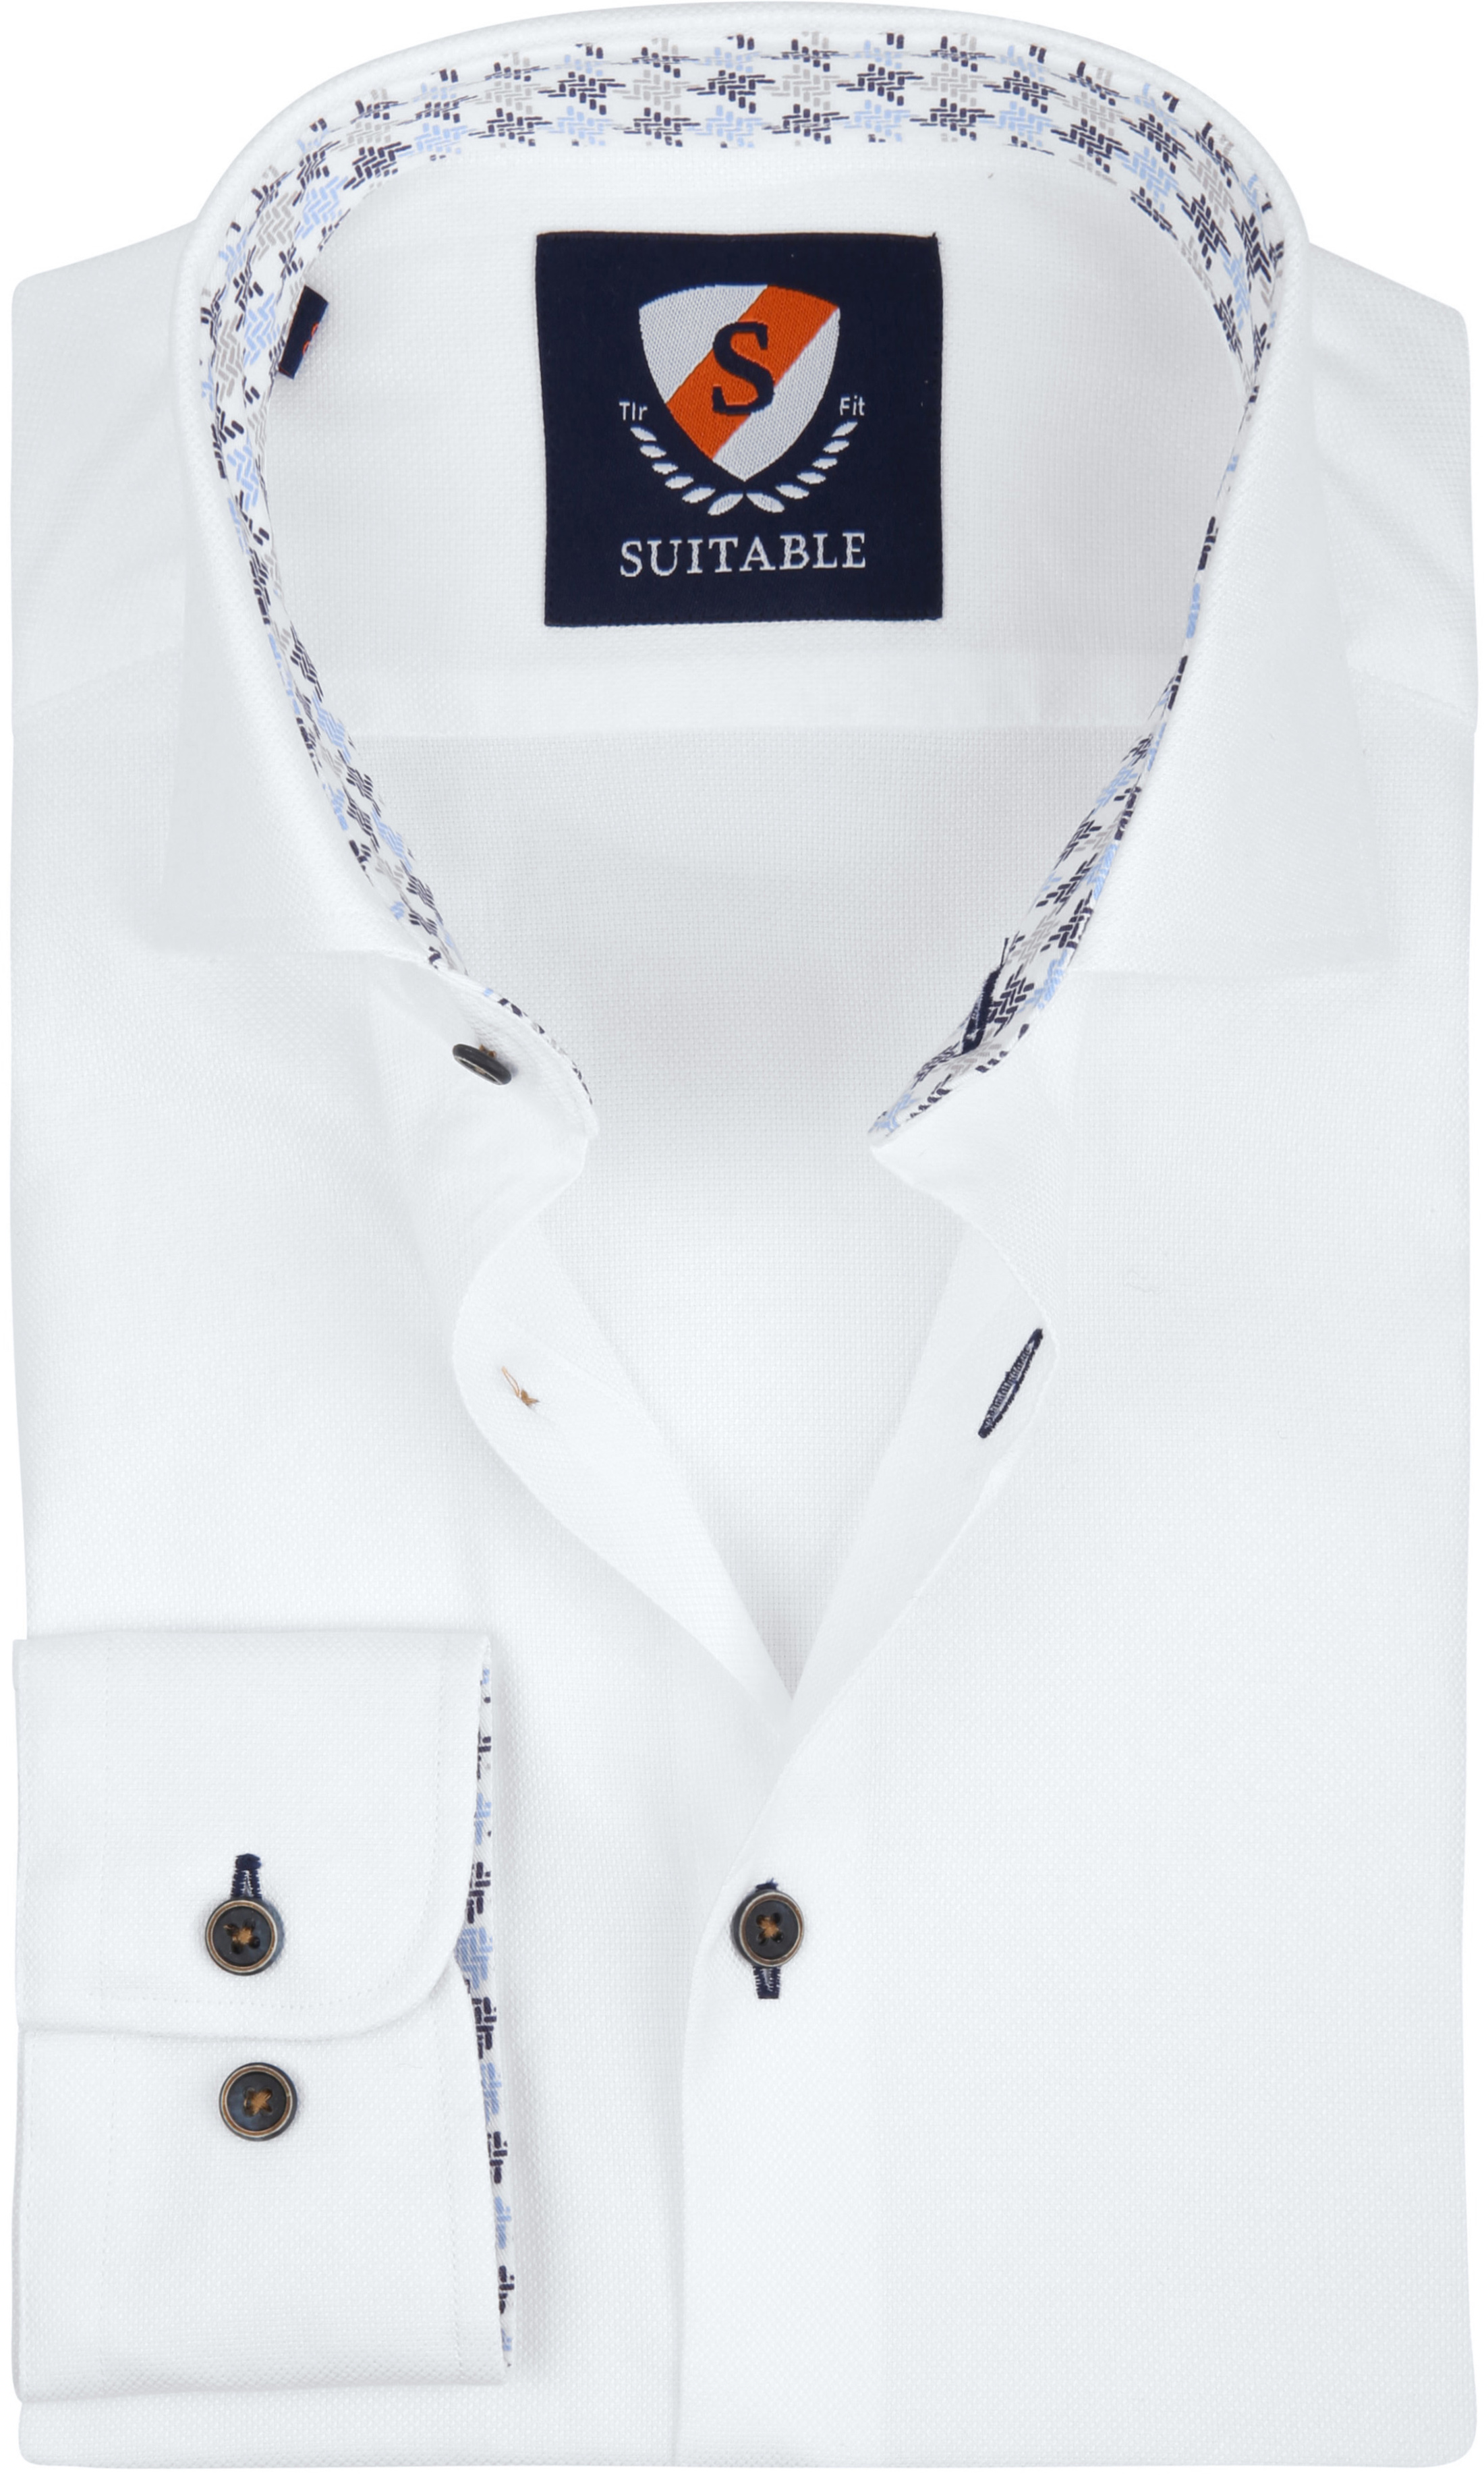 Suitable Shirt Tf Oxford White Spe18306we69st 100 White Order Online